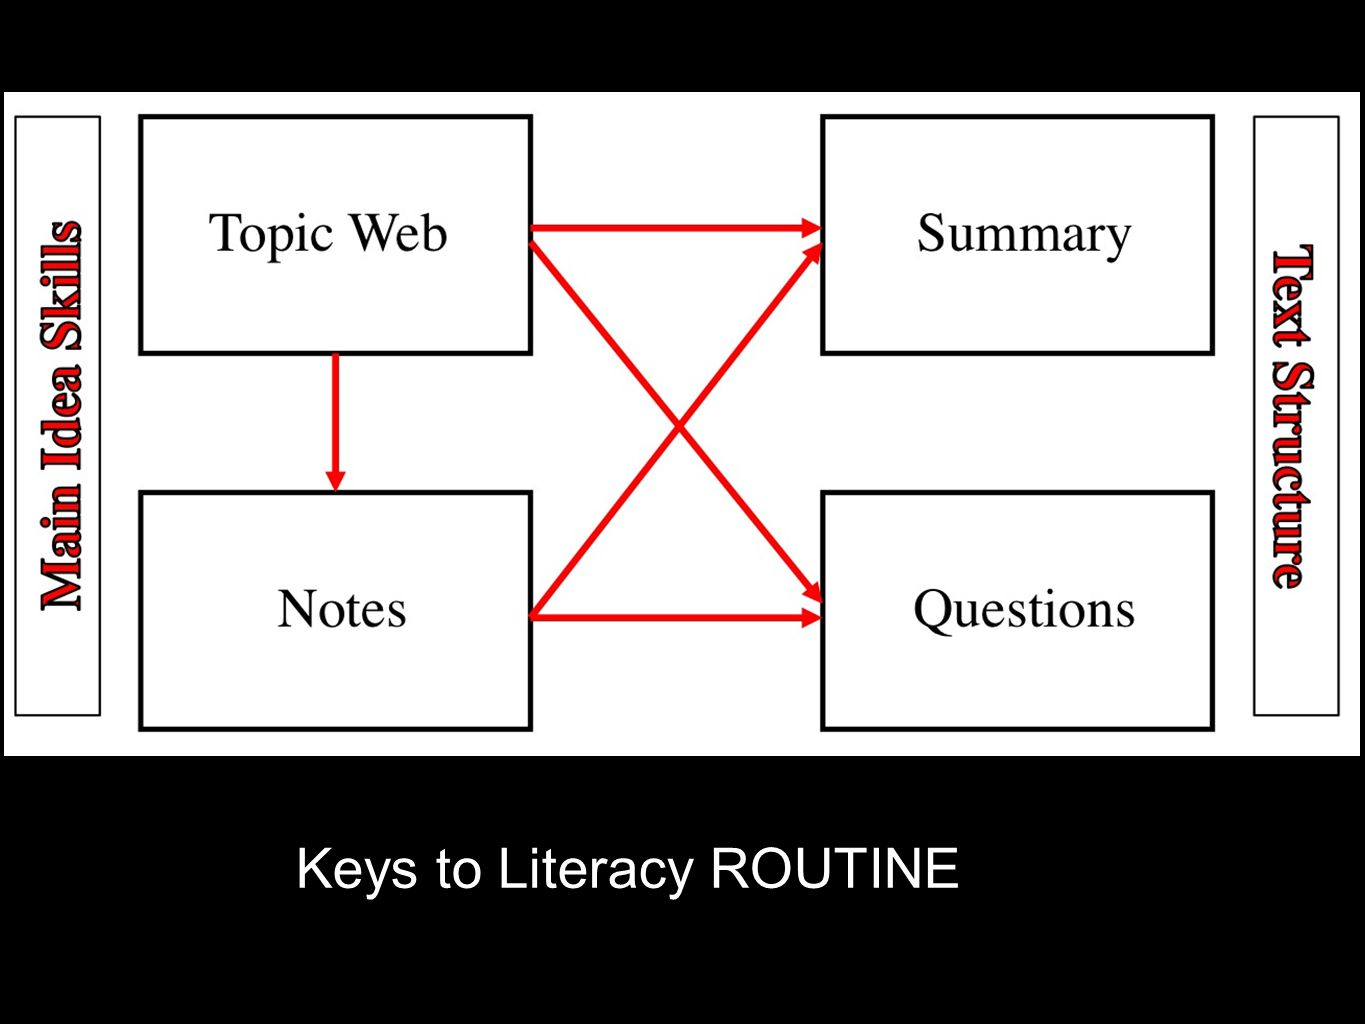 Keys to Literacy ROUTINE